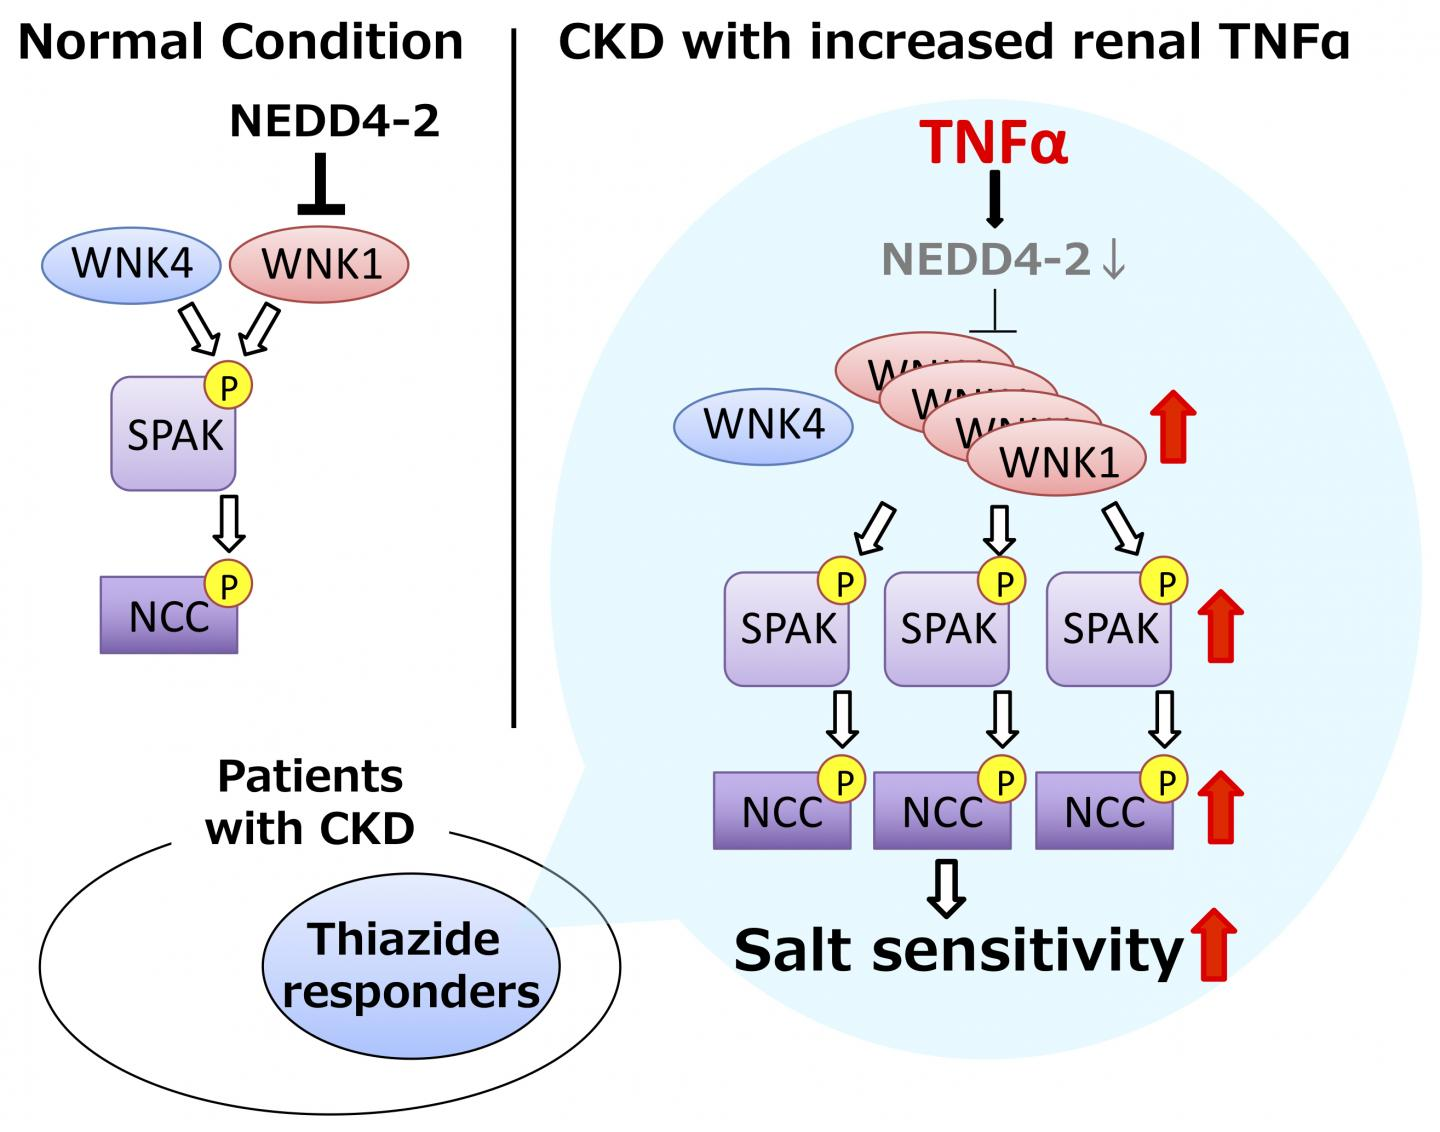 Schematic illustrating TNFα-induced WNK pathway activation and salt-sensitive hypertension in chronic kidney disease (CKD)